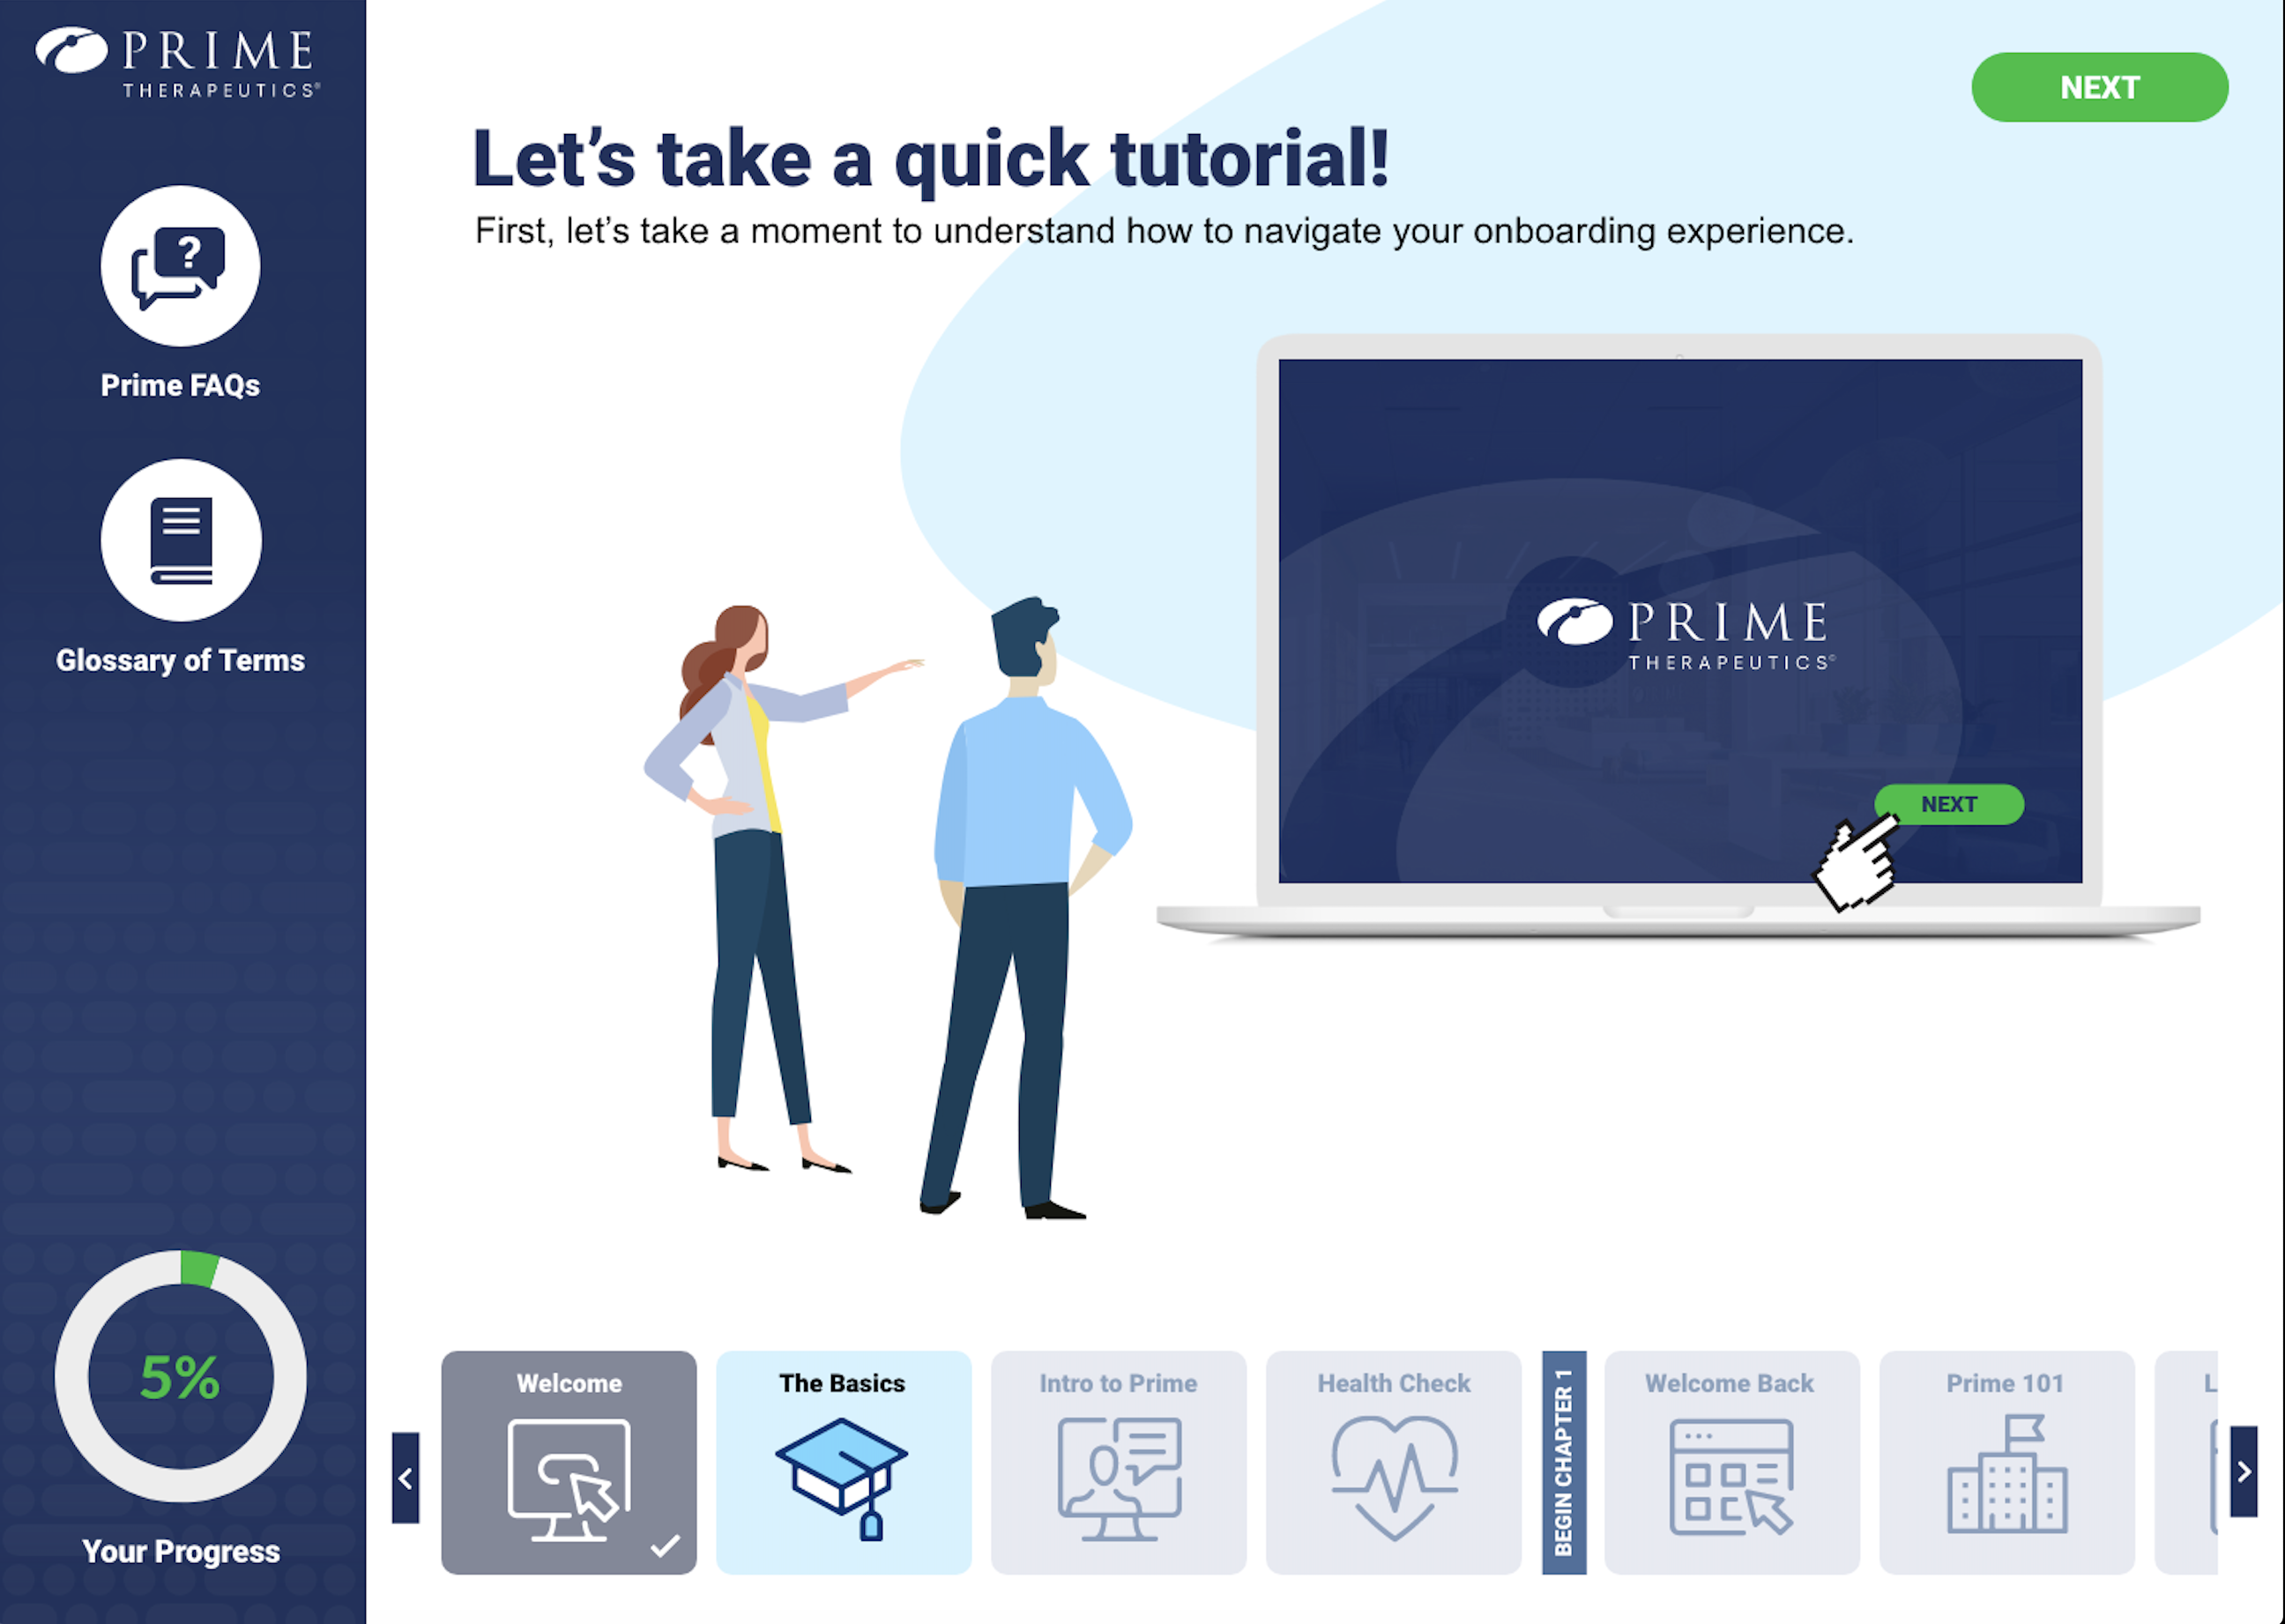 E-Learning & Onboarding App for Prime Therapeutics